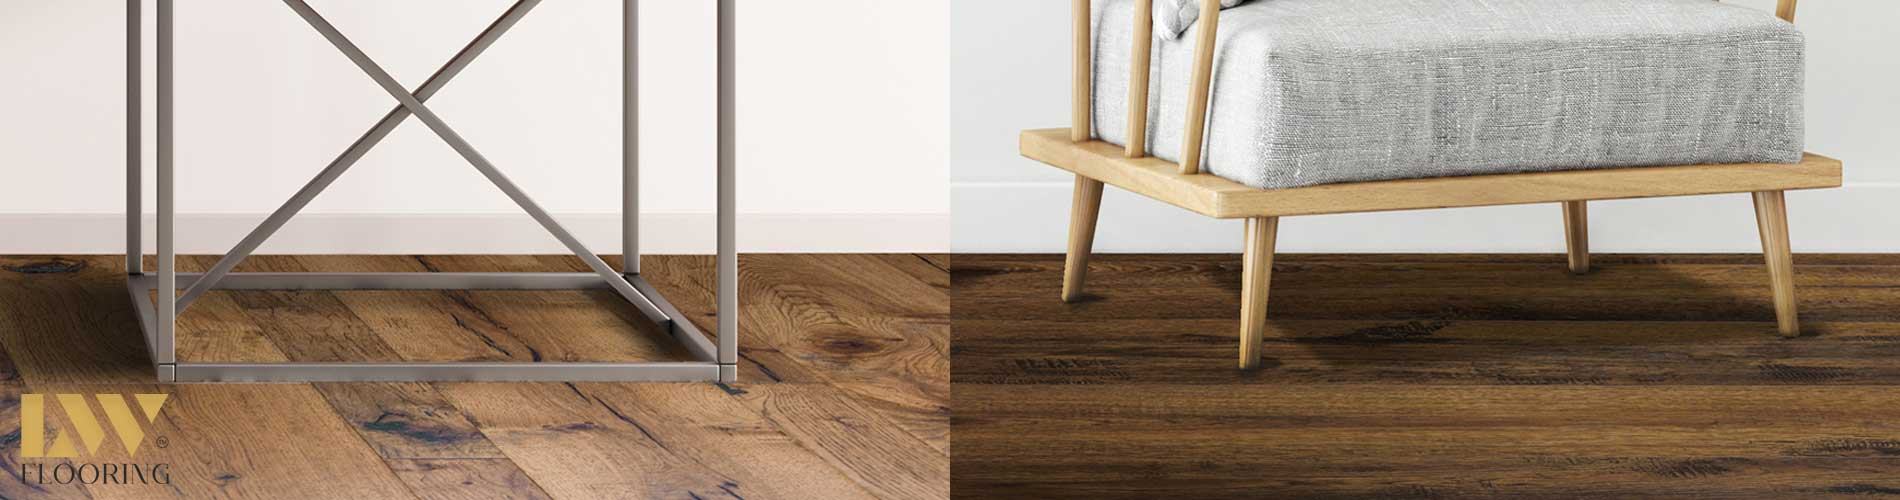 LW Flooring Vinyl and Hardwood on Sale at Lakeside Floors to Go